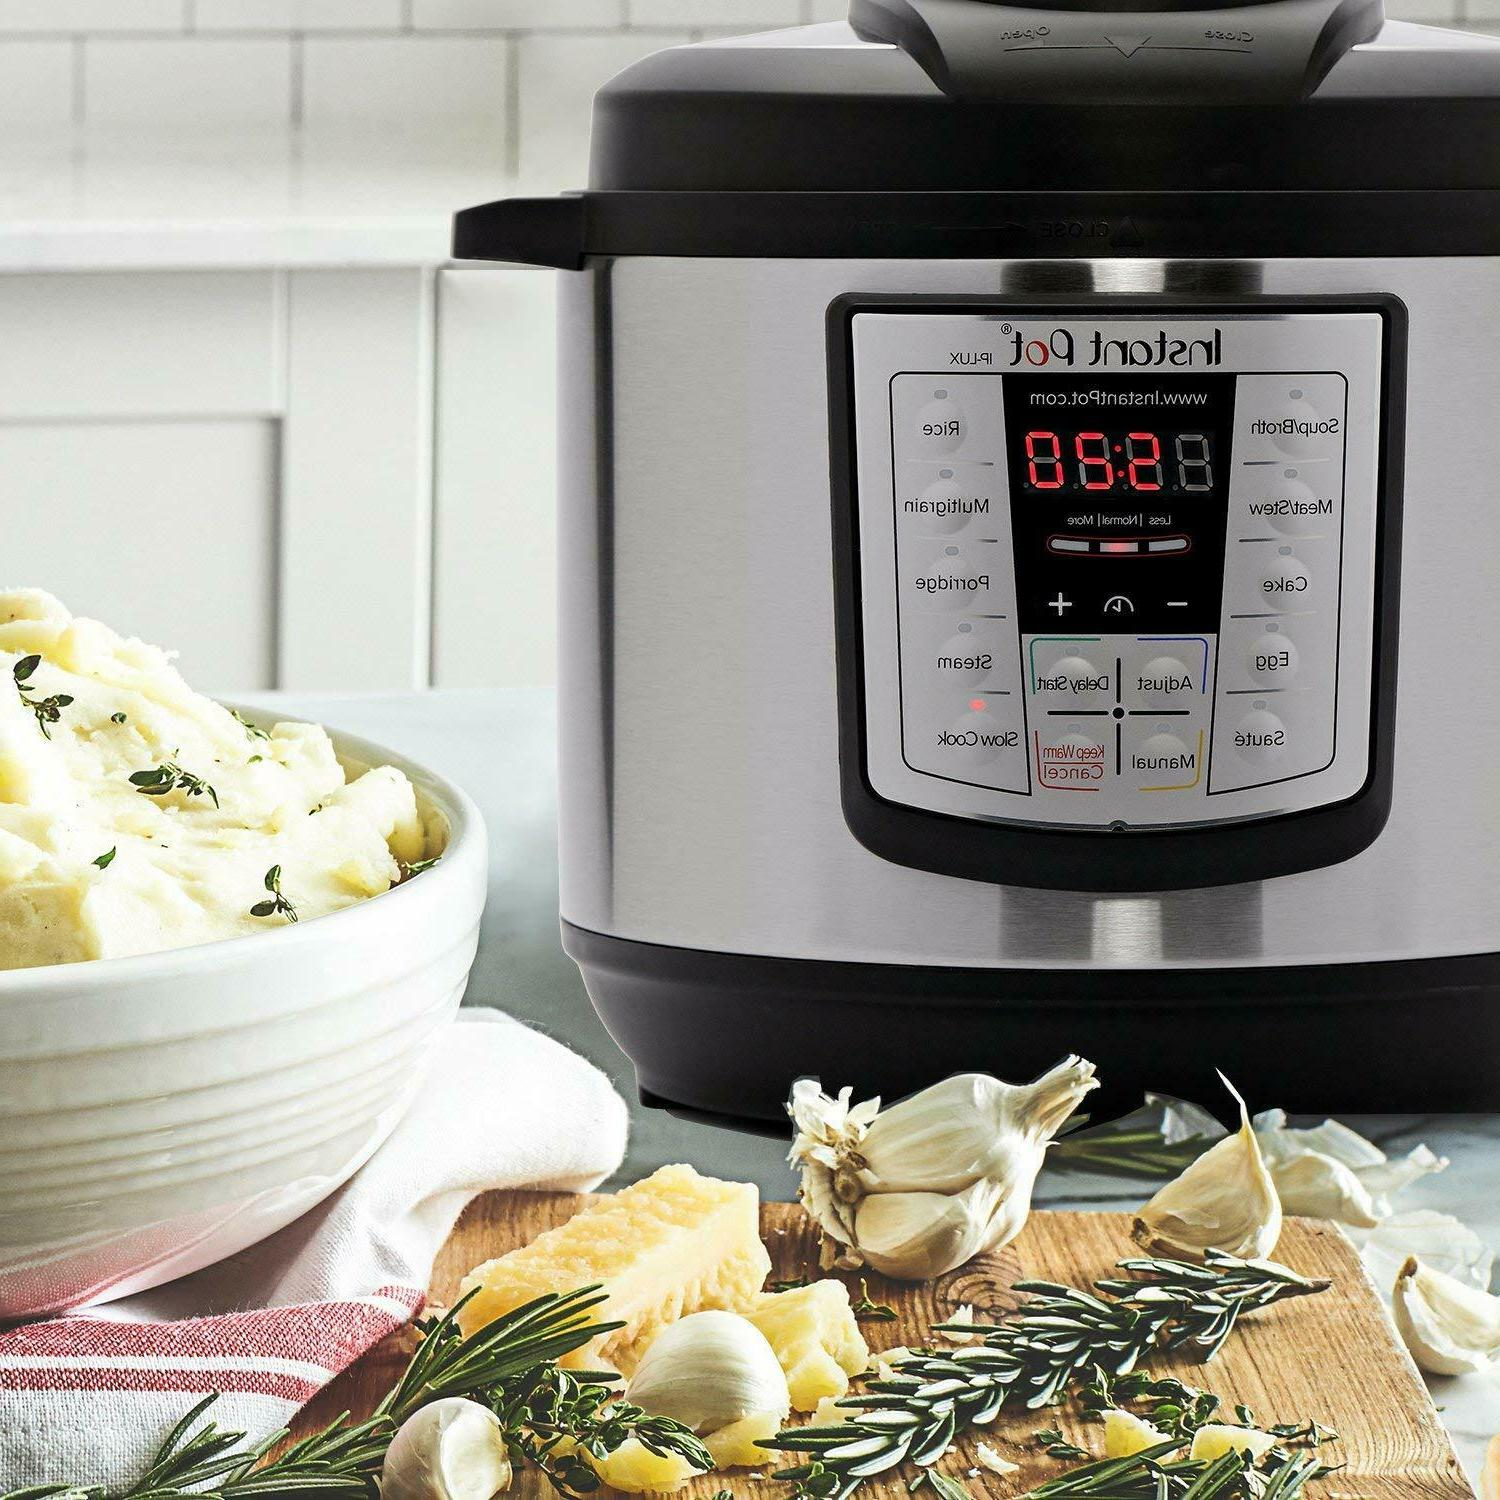 Instant Pot Qt 6-In-1 Use Programmable Pressure